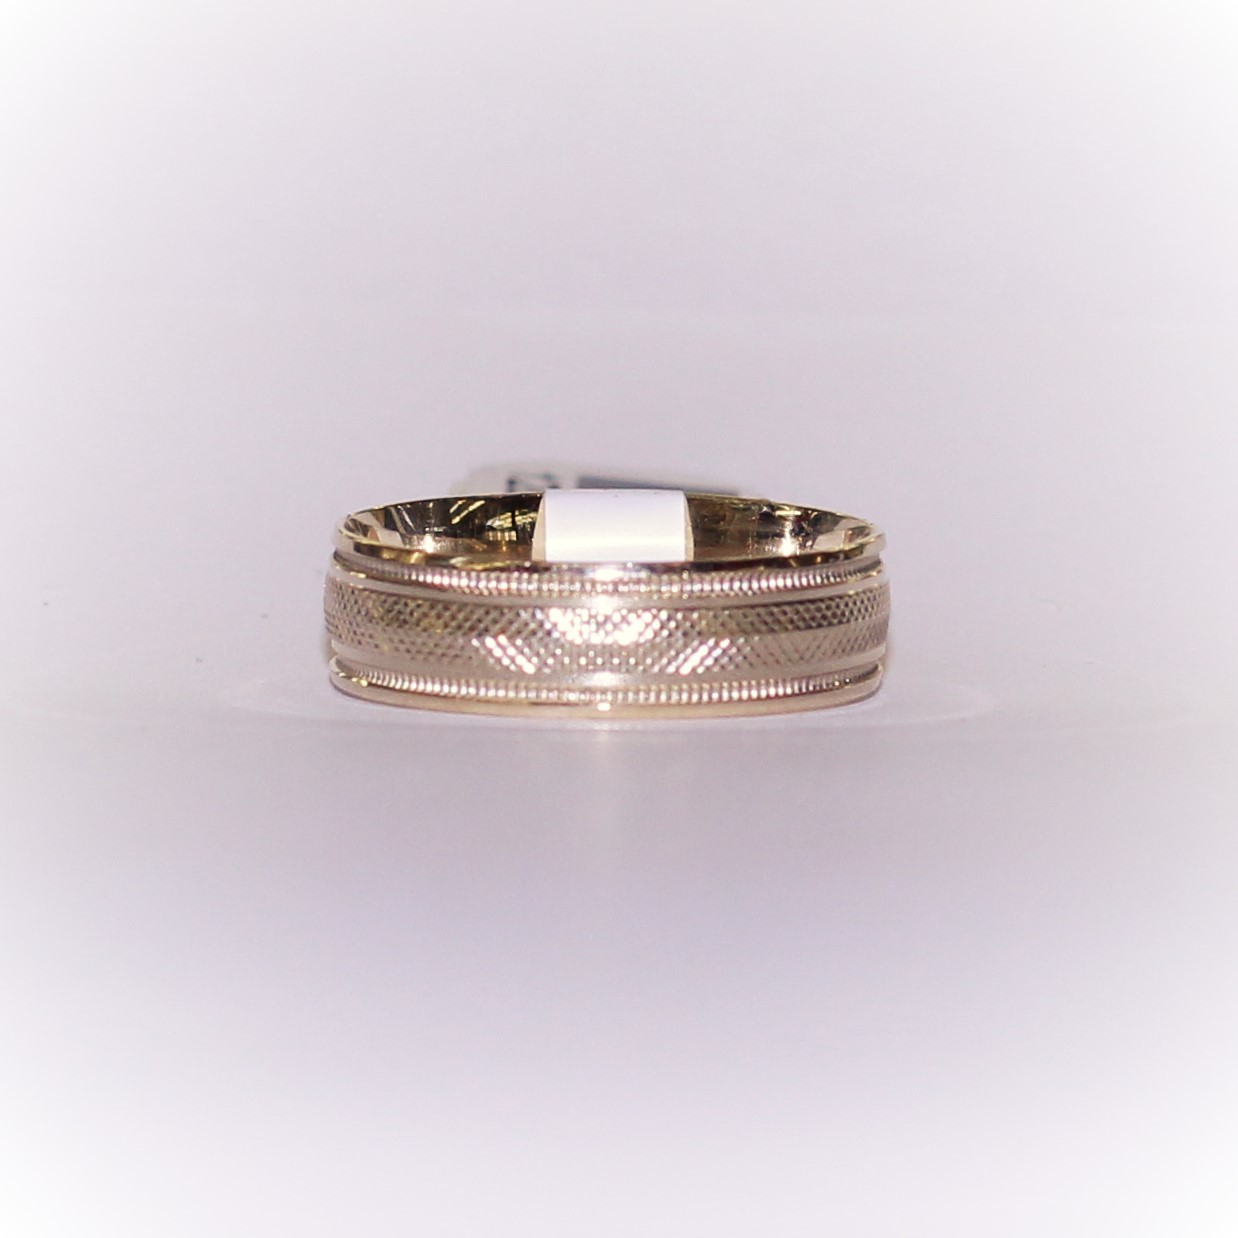 10KT GOLD TEXTURED BAND